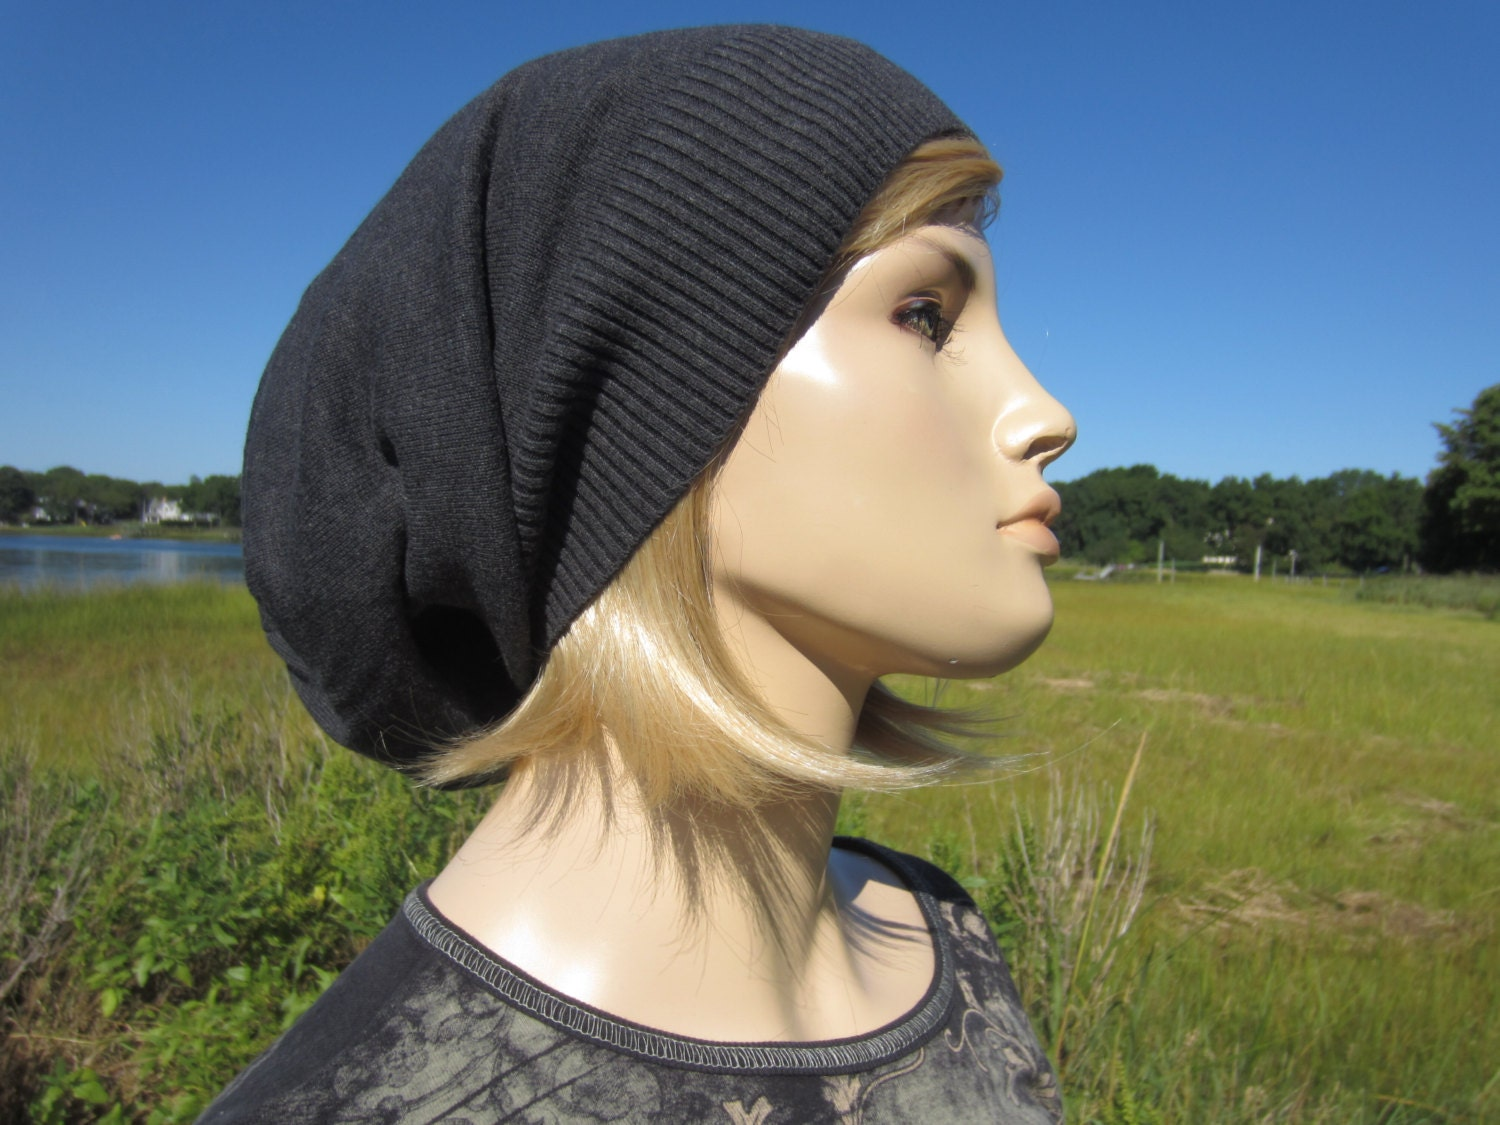 Women s Oversized Tams Hats Big Head Slouchy Beanies Combed Cotton  Lightweight Knit hat Charcoal Gray A1385 eae494d59b4